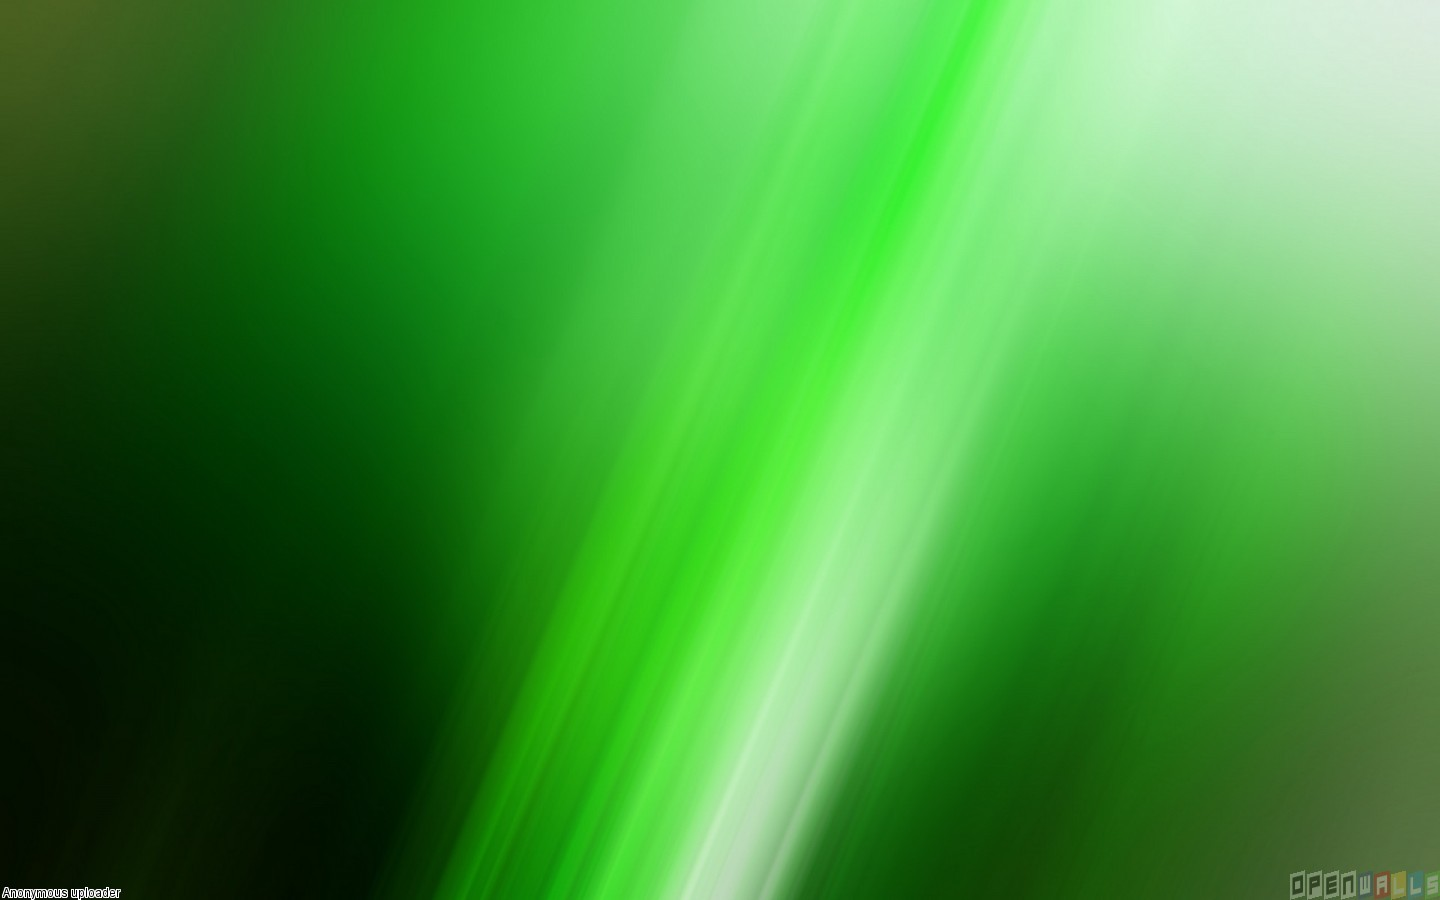 green background uploader anonymous licence category others tags green 1440x900